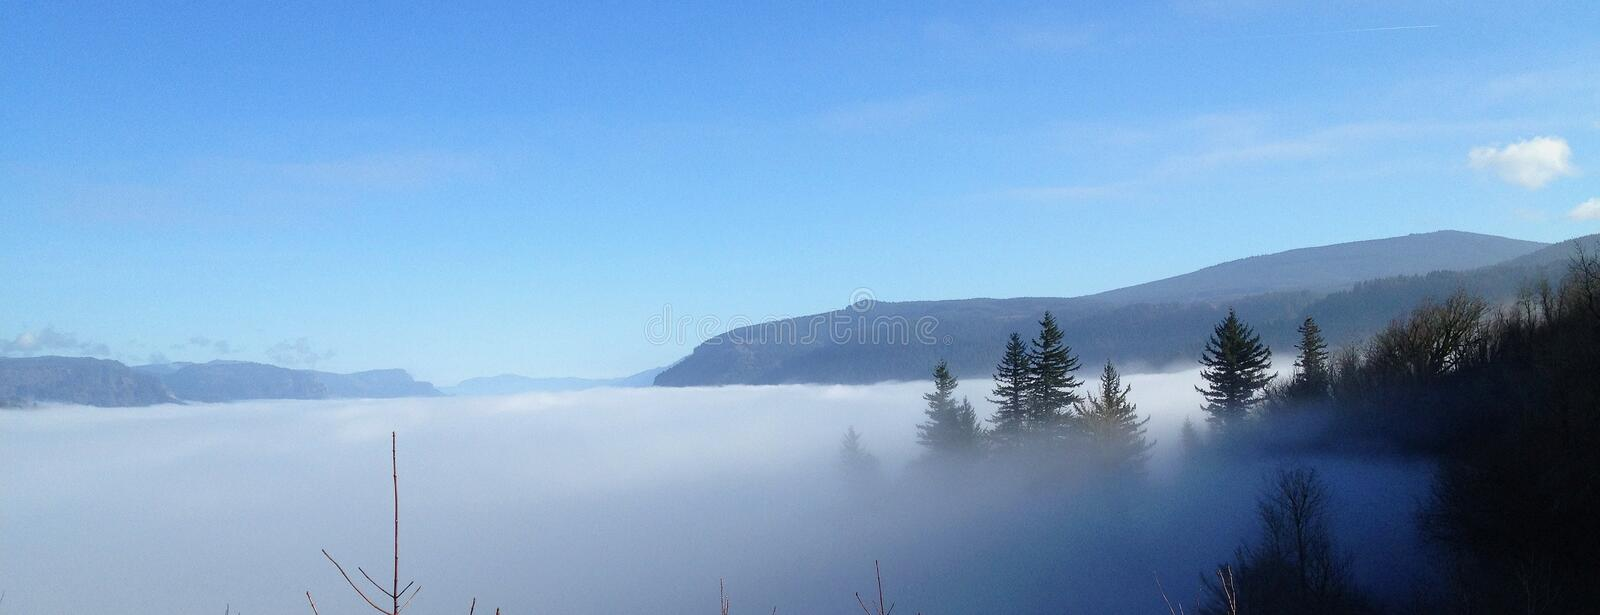 Trees and mountain peaking through mist in Portland, Oregon stock photography